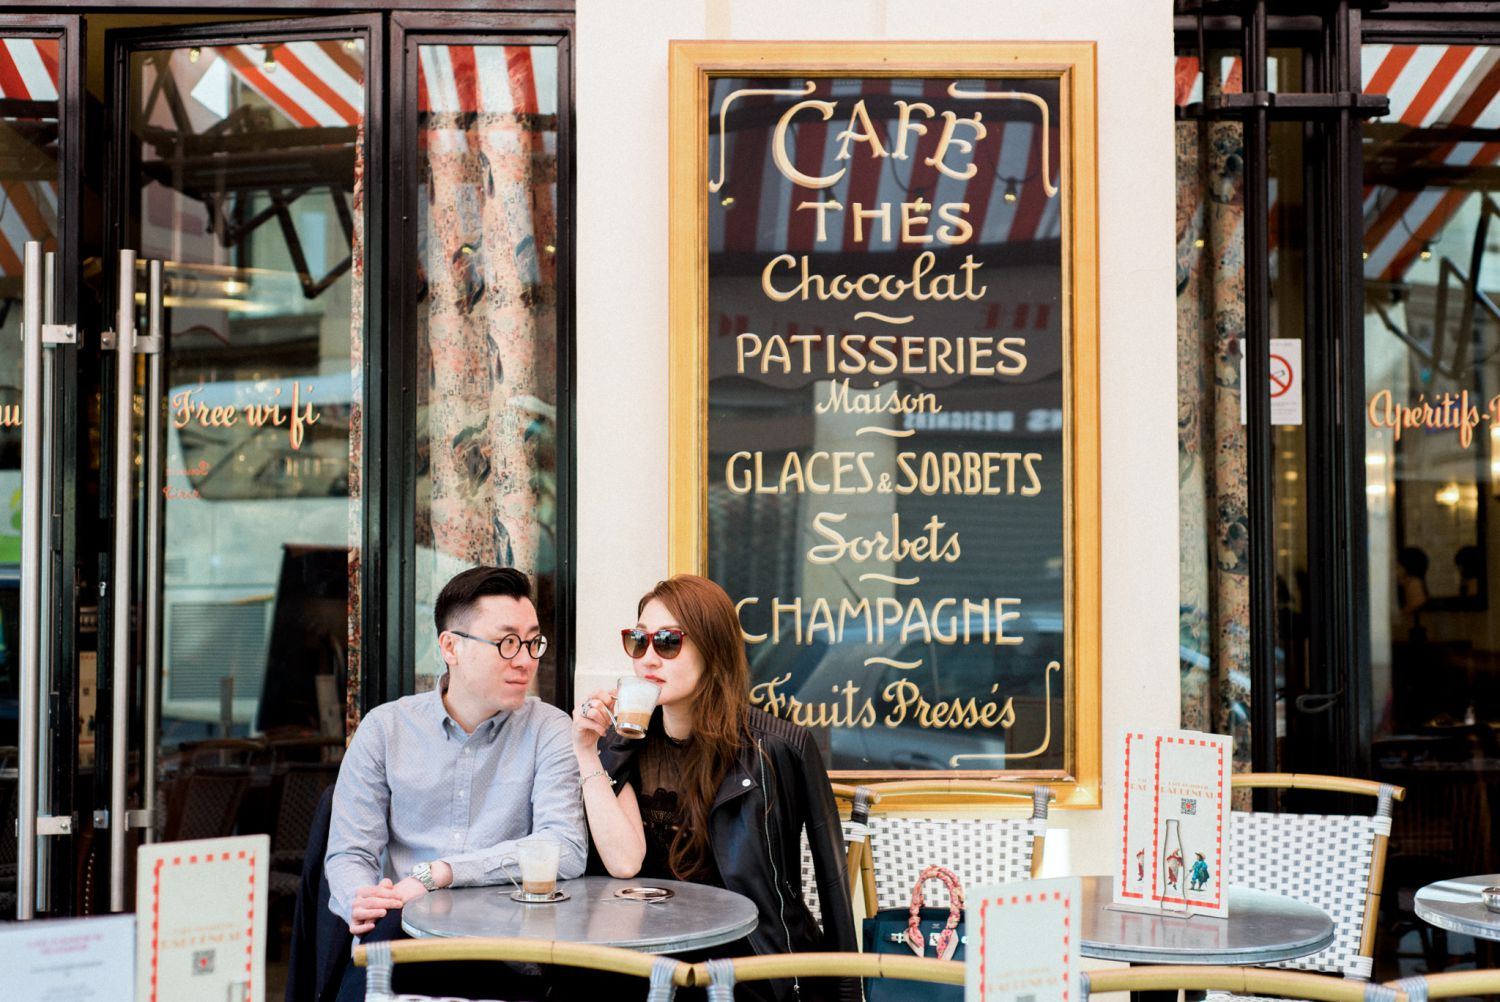 Cute café in Paris engagement photo